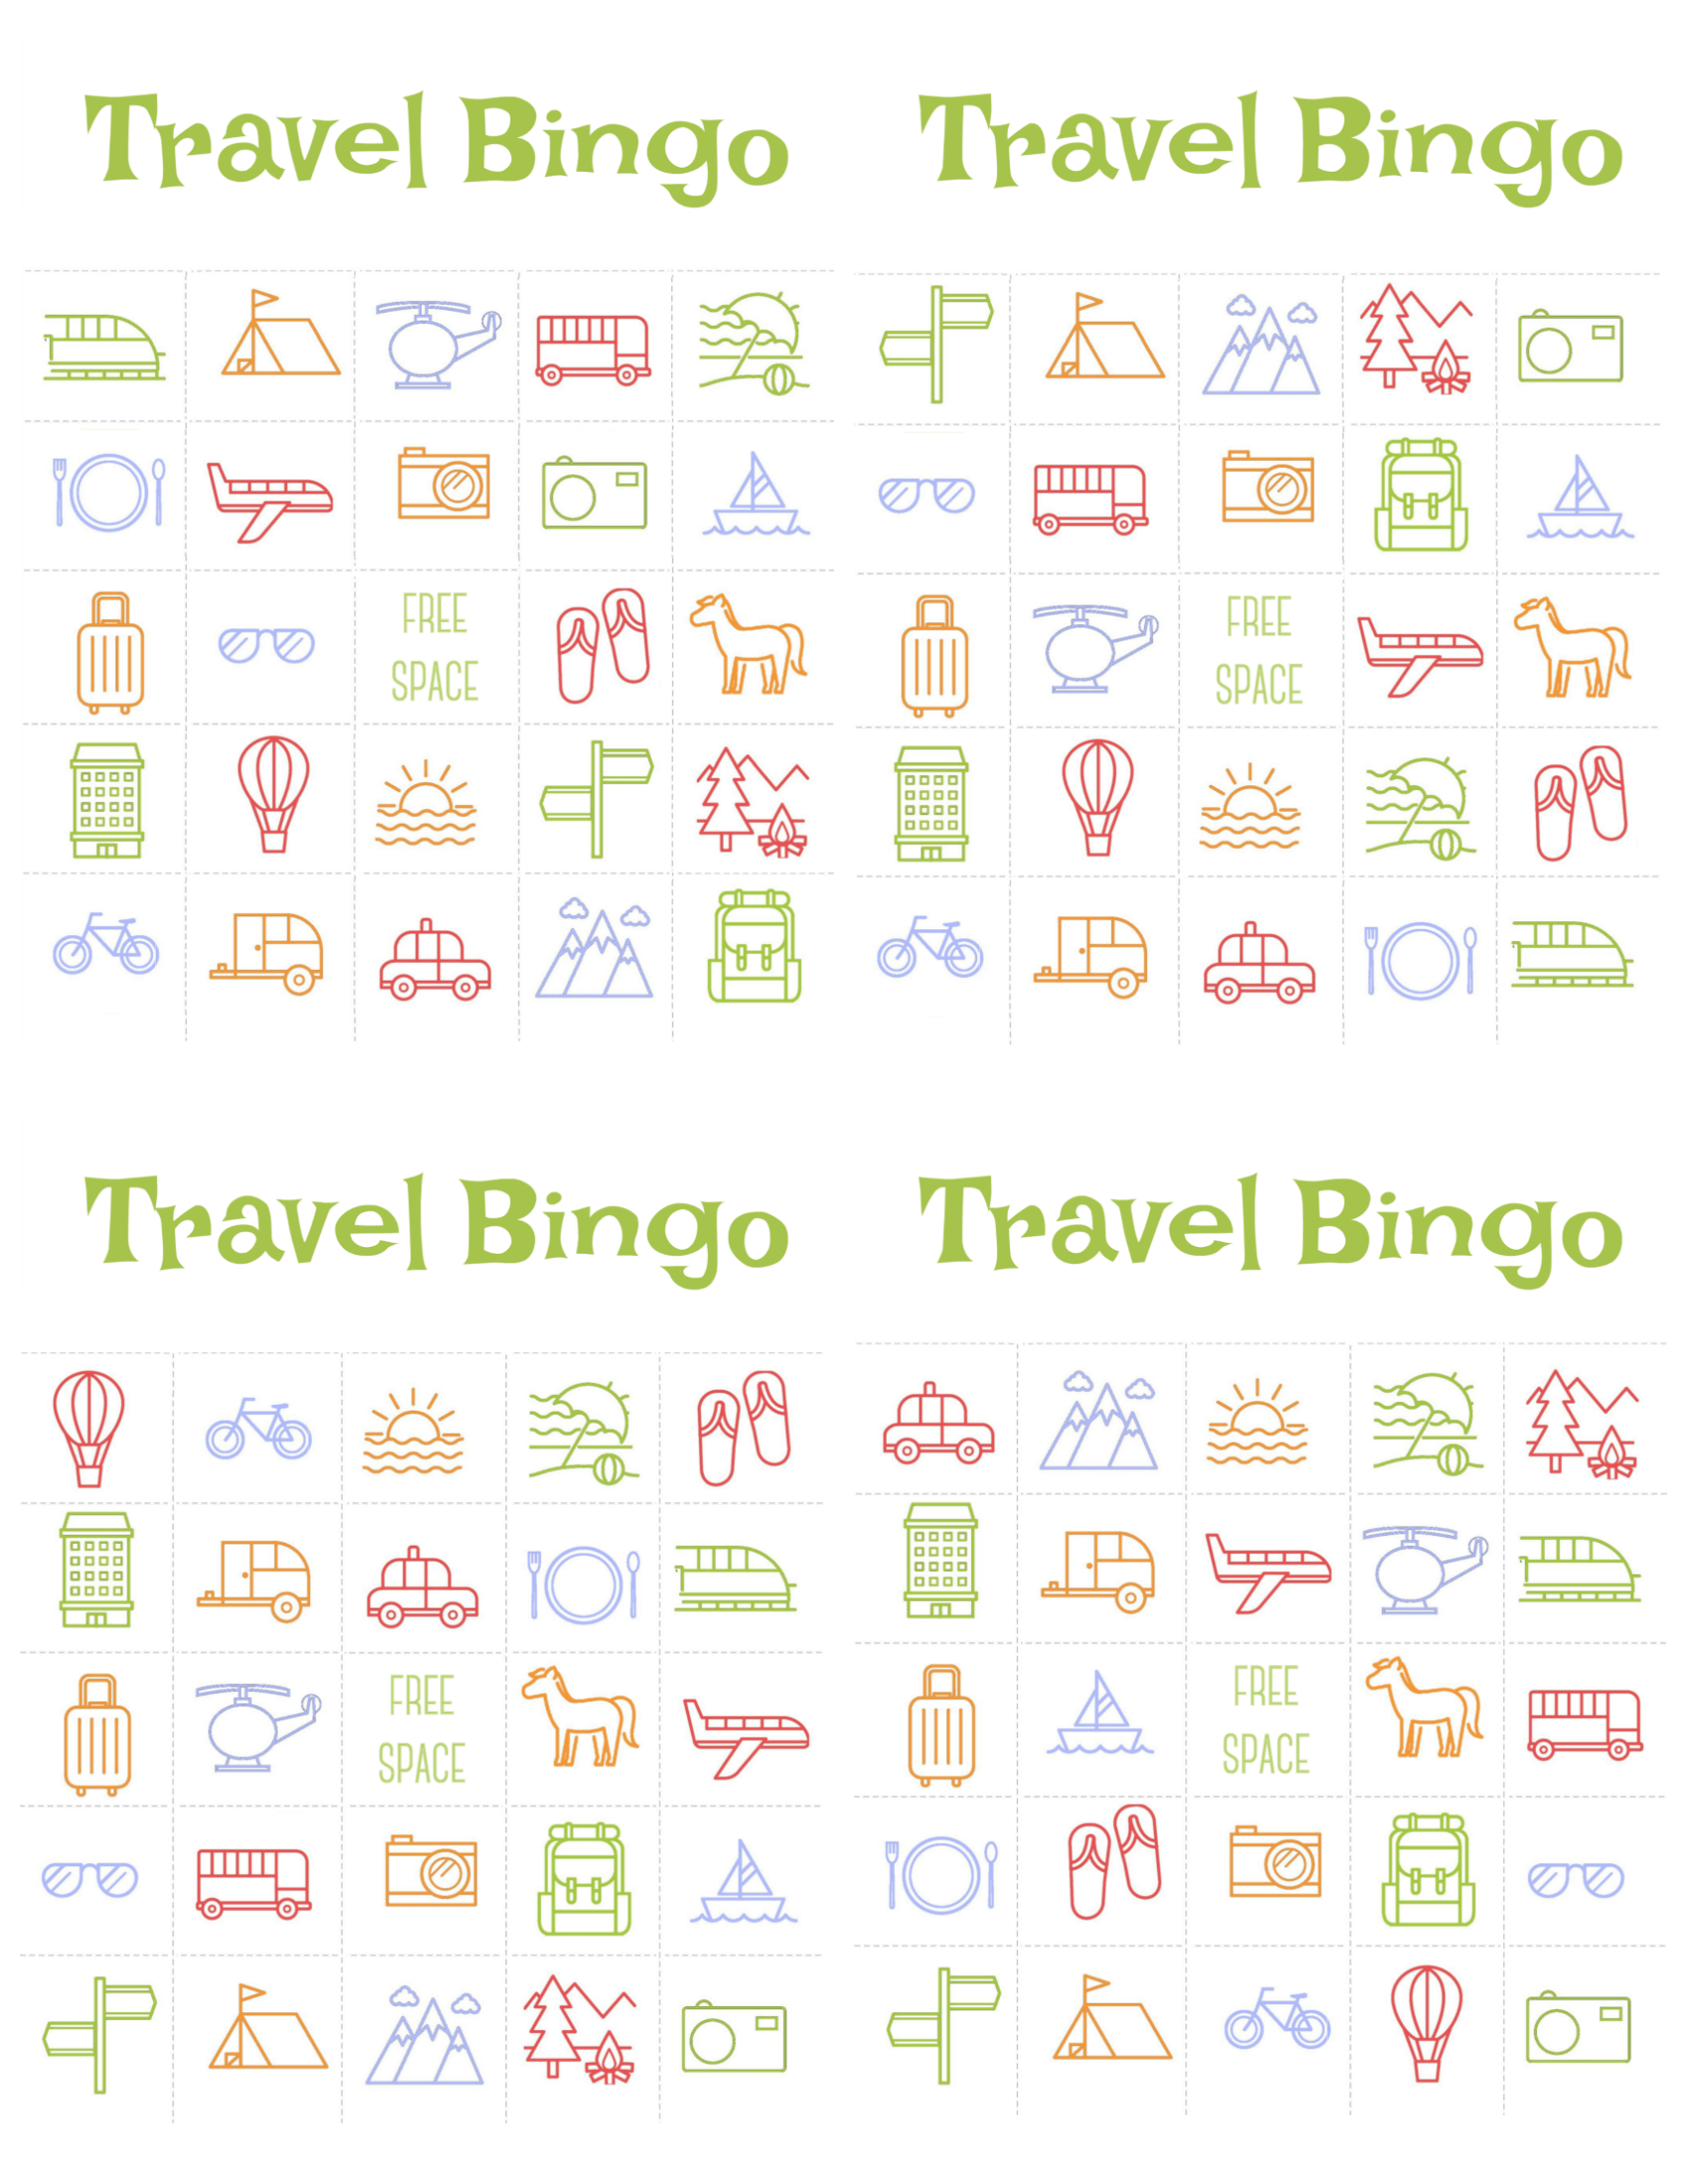 picture relating to Travel Bingo Printable named Drive Bingo - Absolutely free Printable Bingo Playing cards for Little ones - A